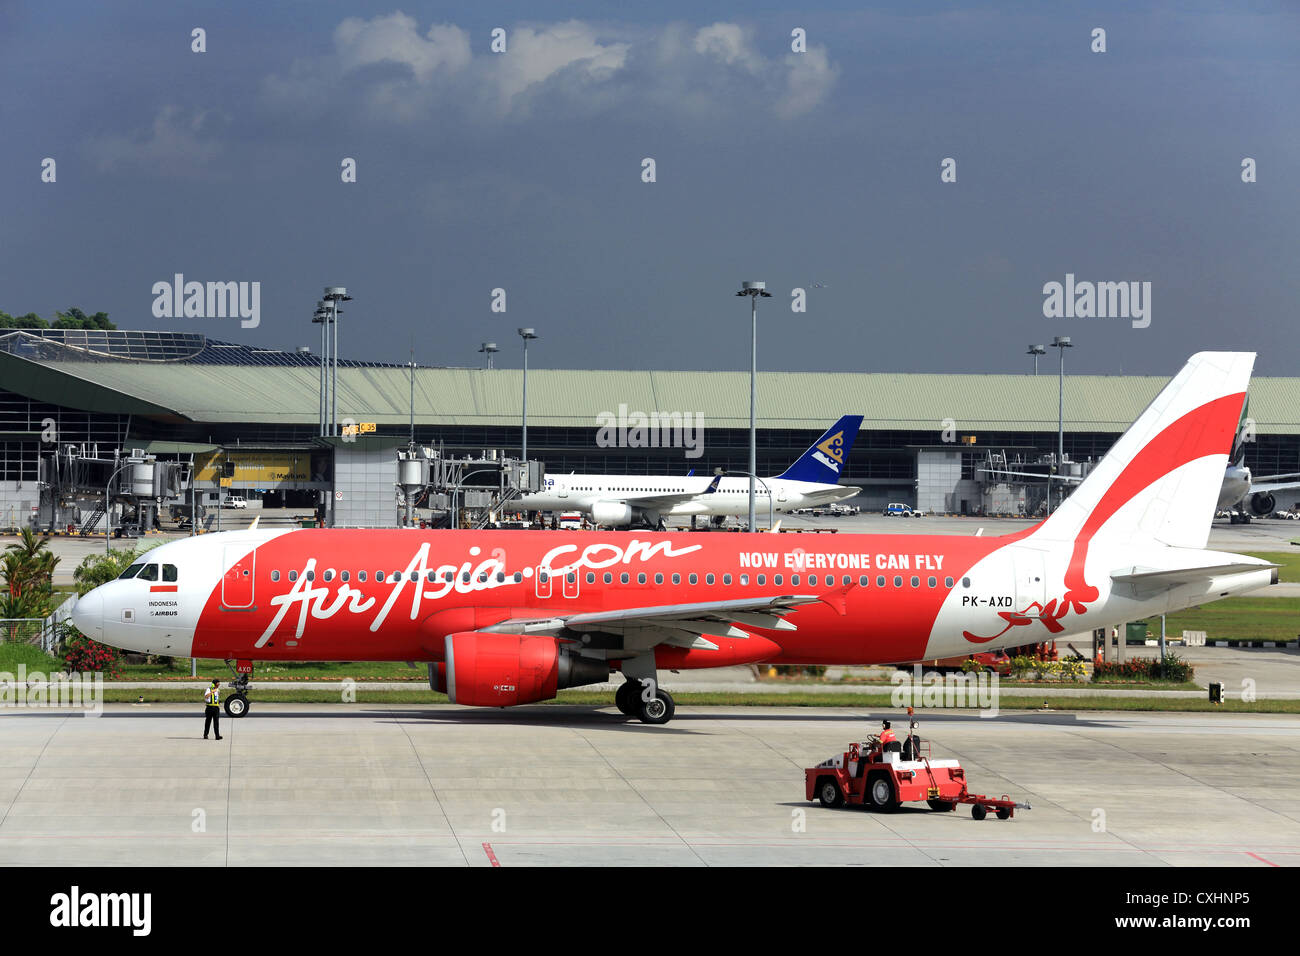 Air Asia airlines Airbus jet plane on the tarmac at KLCC airport near Kuala Lumpur, Malaysia. - Stock Image